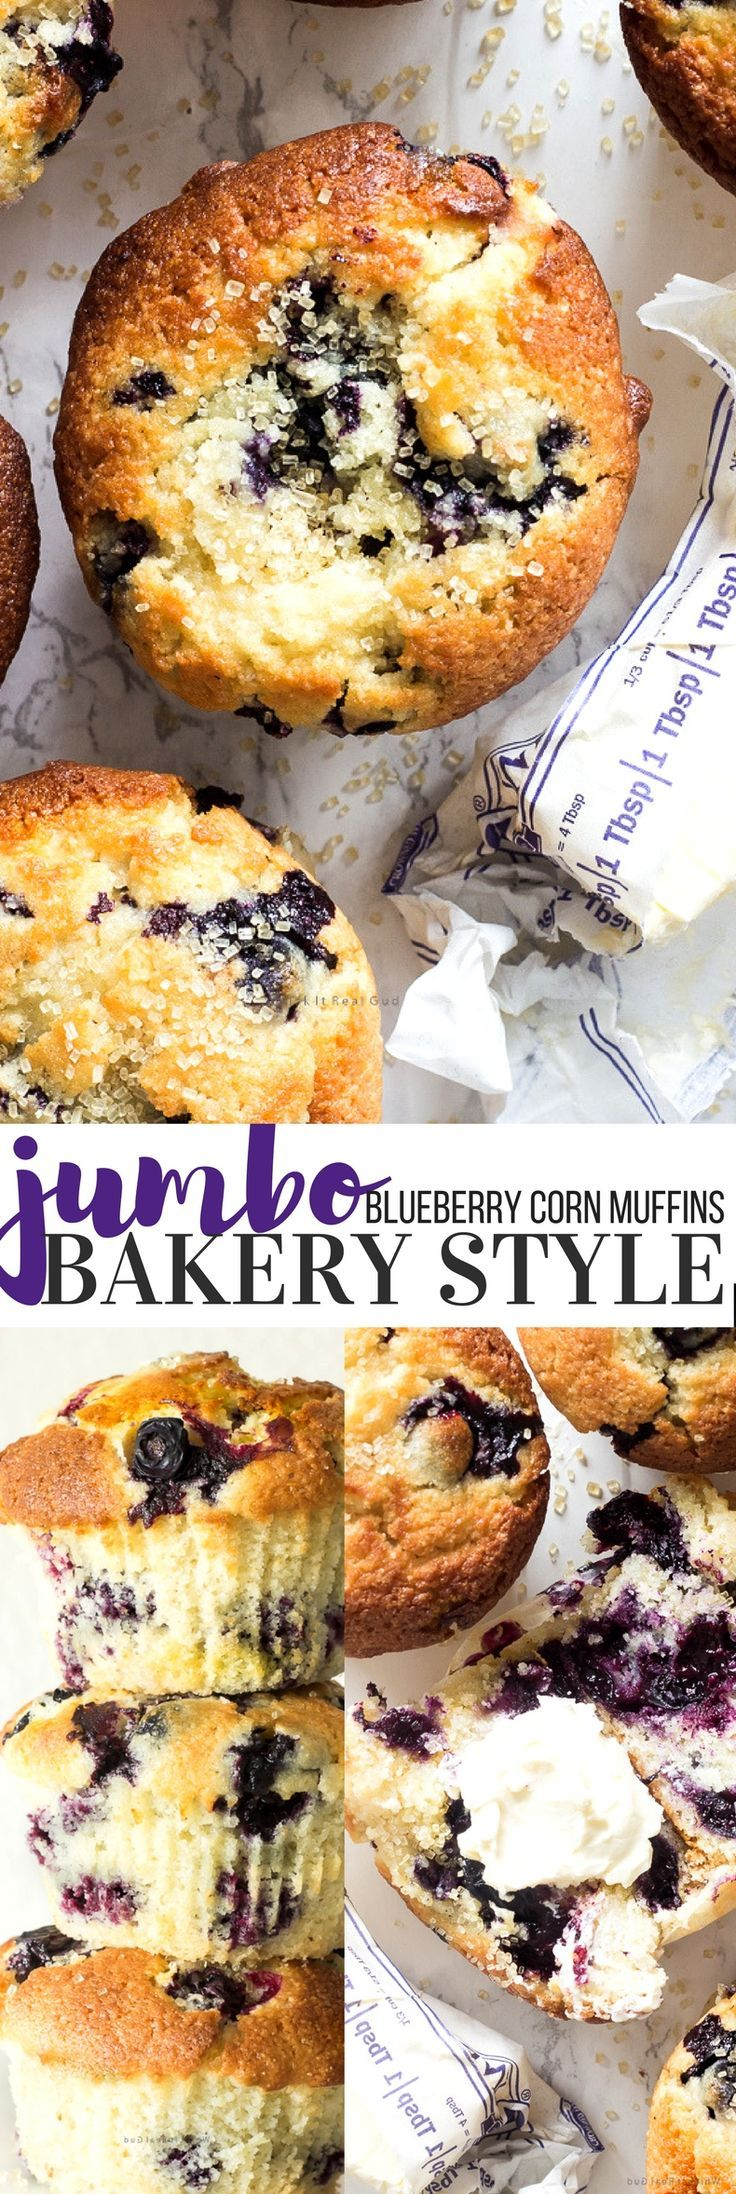 Jumbo Blueberry Corn Muffins Recipe (With images